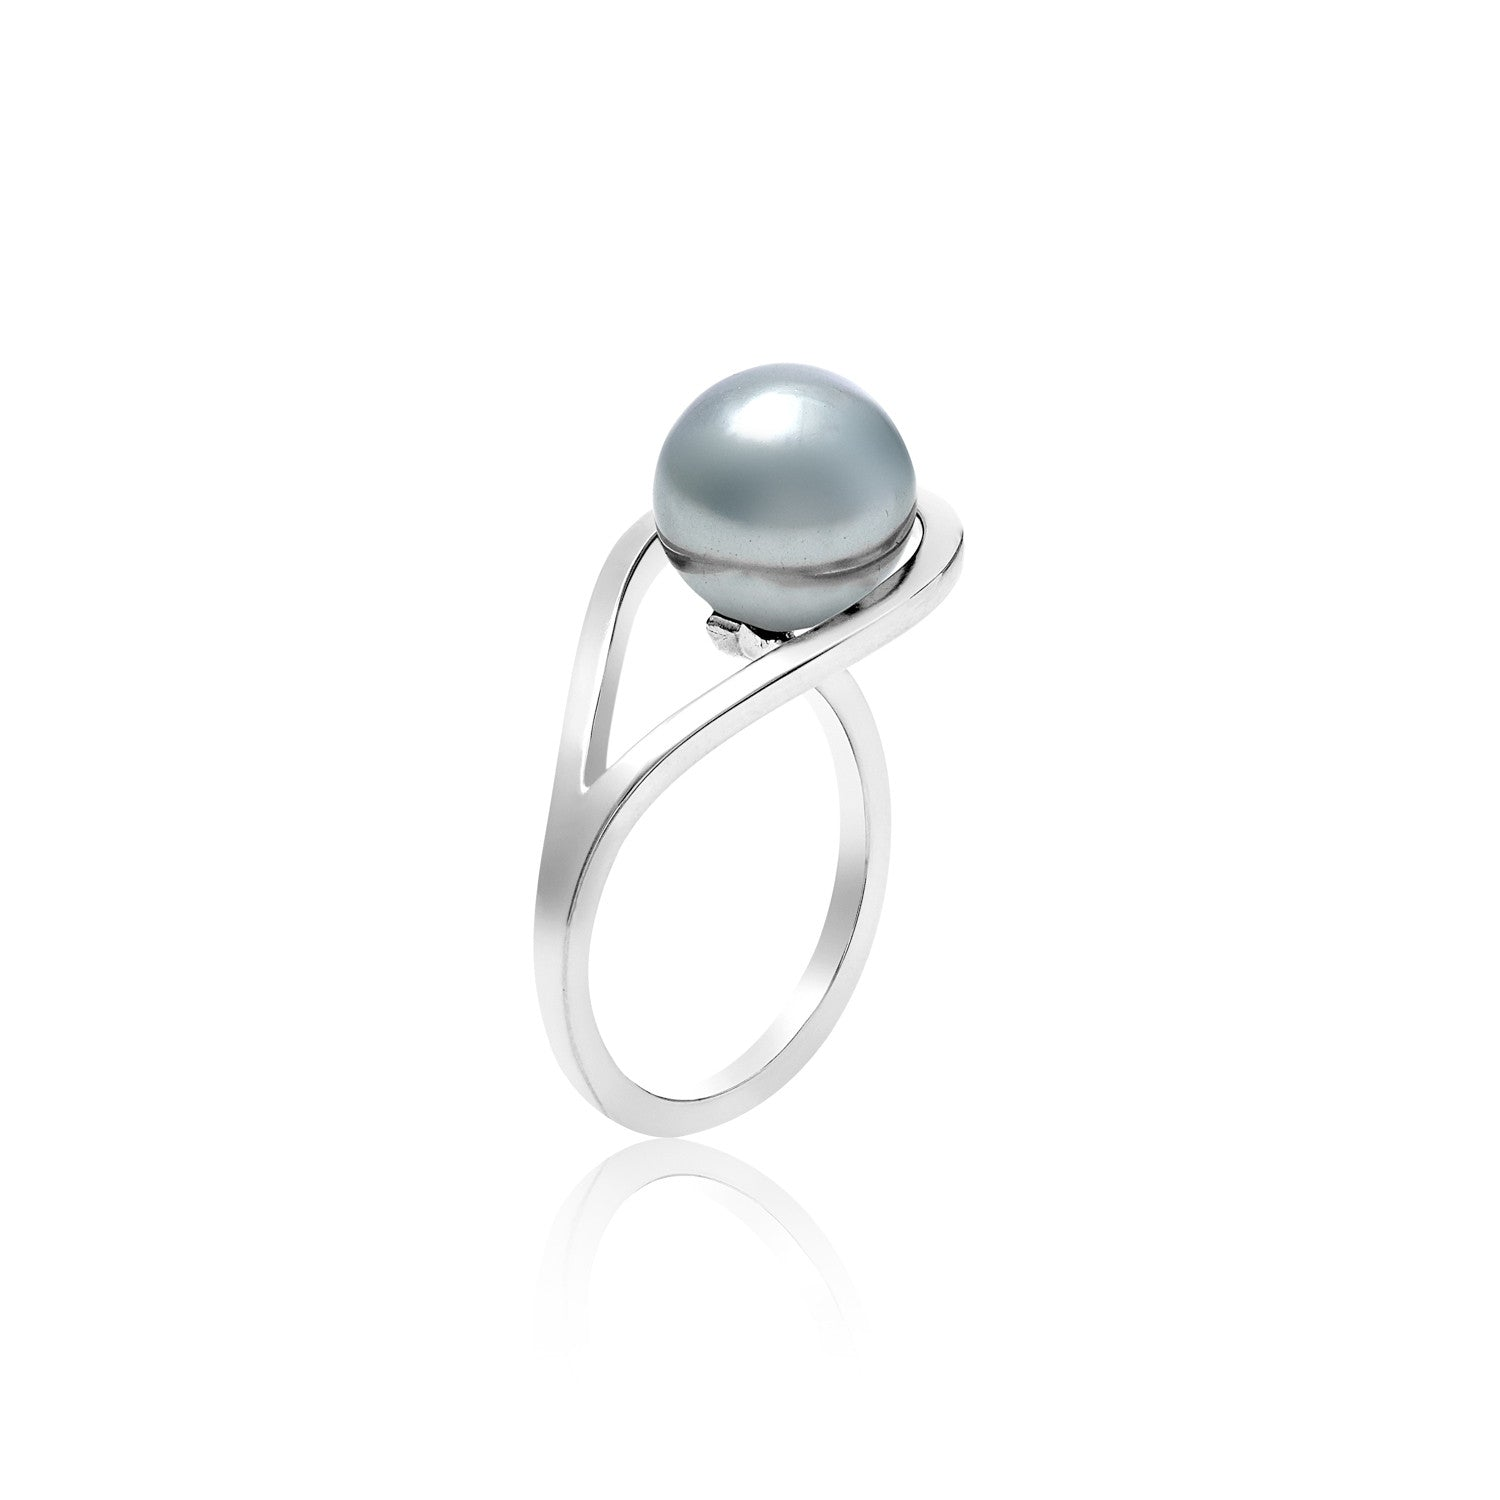 Silver Ring with Pearl, geometric, unique British design